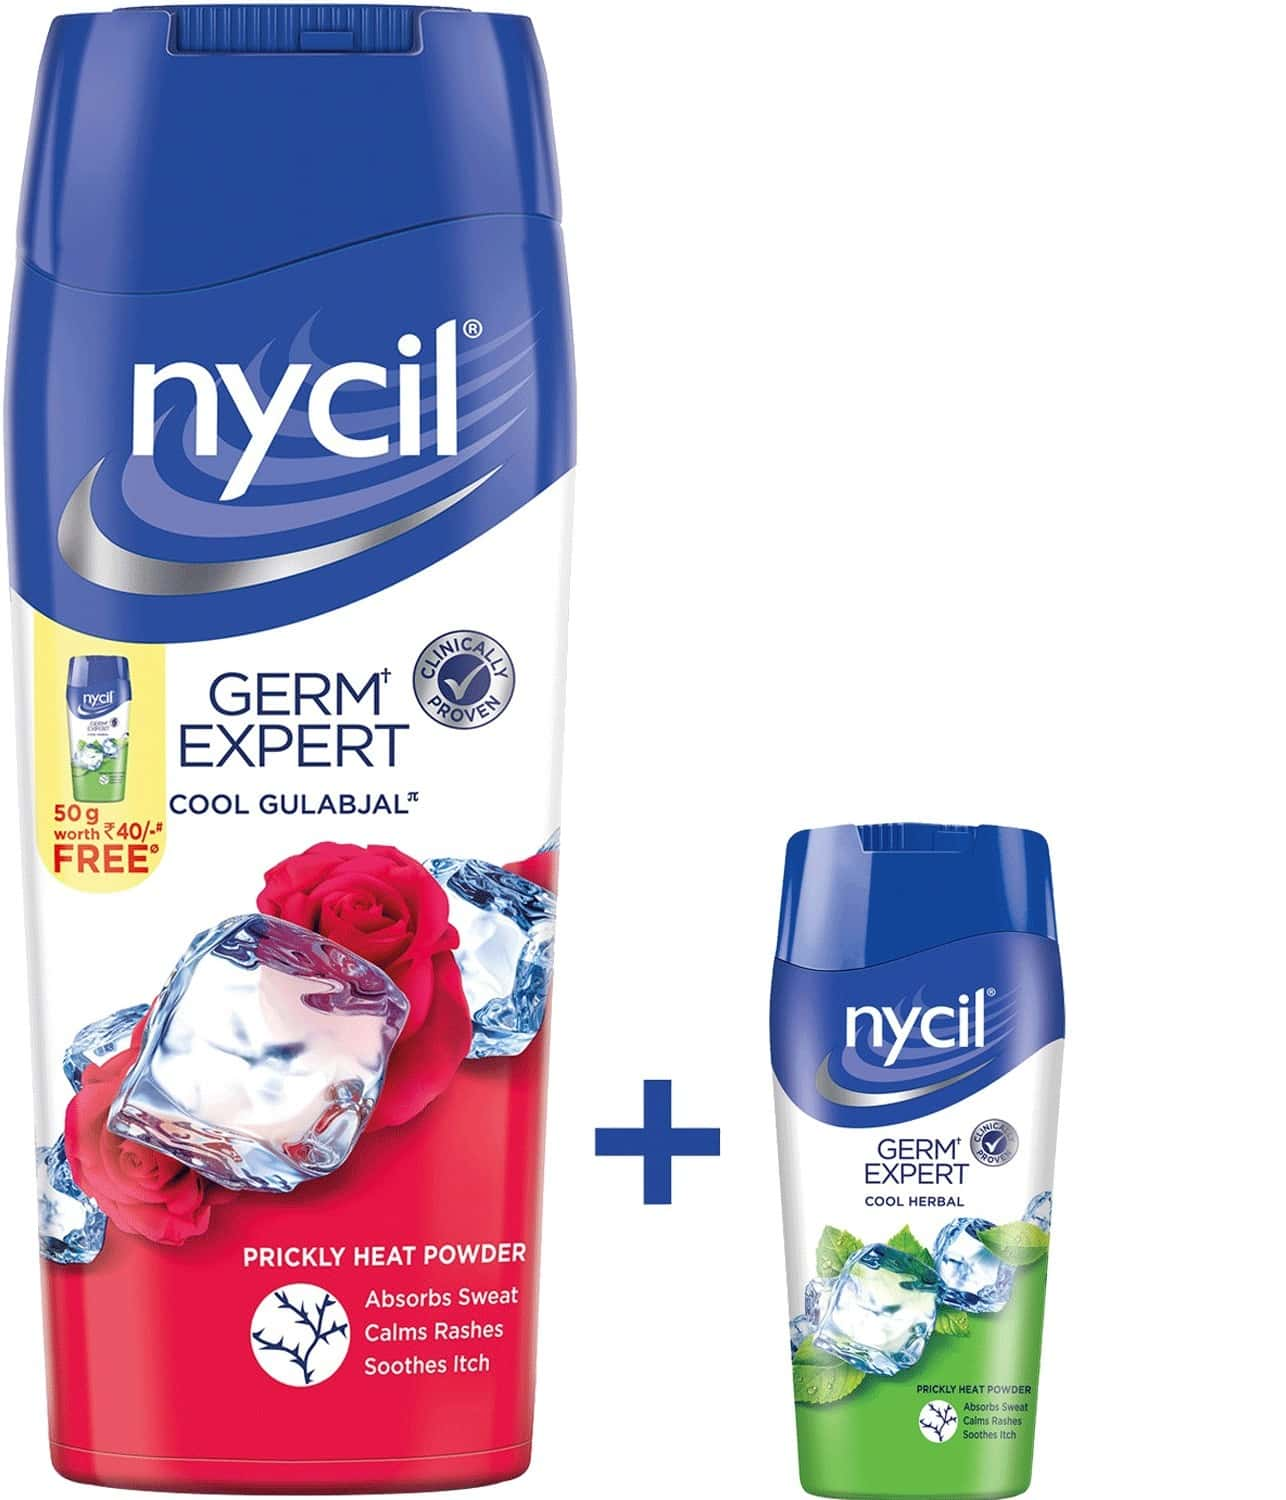 Nycil Cool Gulabjal, Prickly Heat Powder 150g (free Nycil Cool Herbal - 50gm Worth Rs 40)